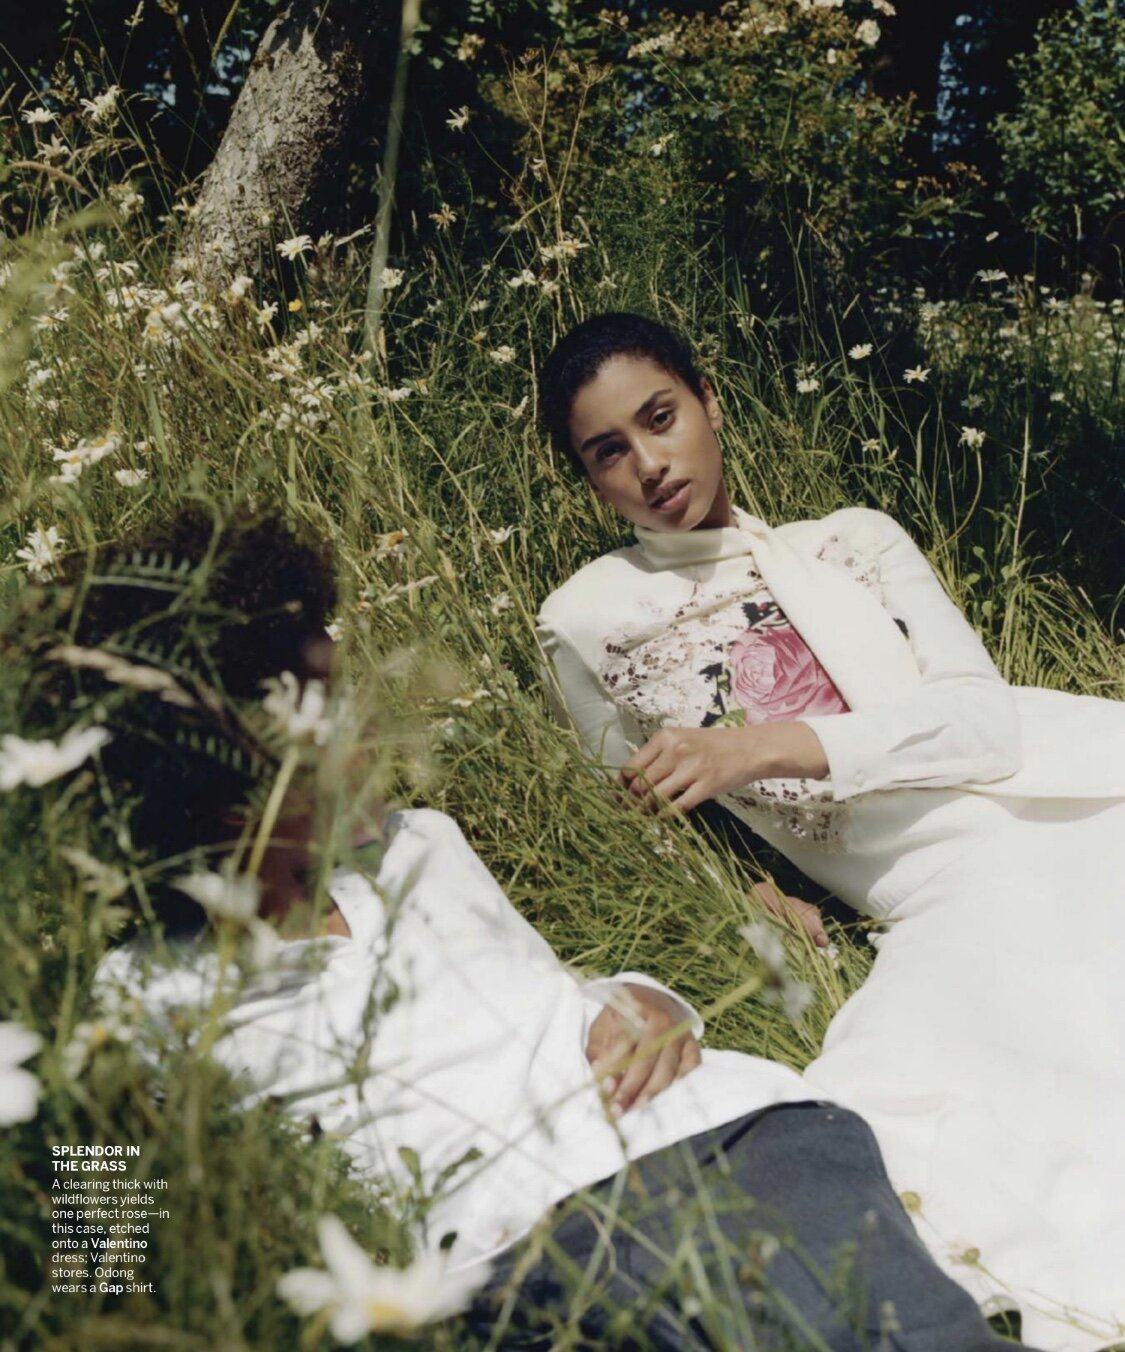 Imaan Hannam by Tyler Mitchell in Blooming Anew for Vogue US Sept 2019 (6).jpg